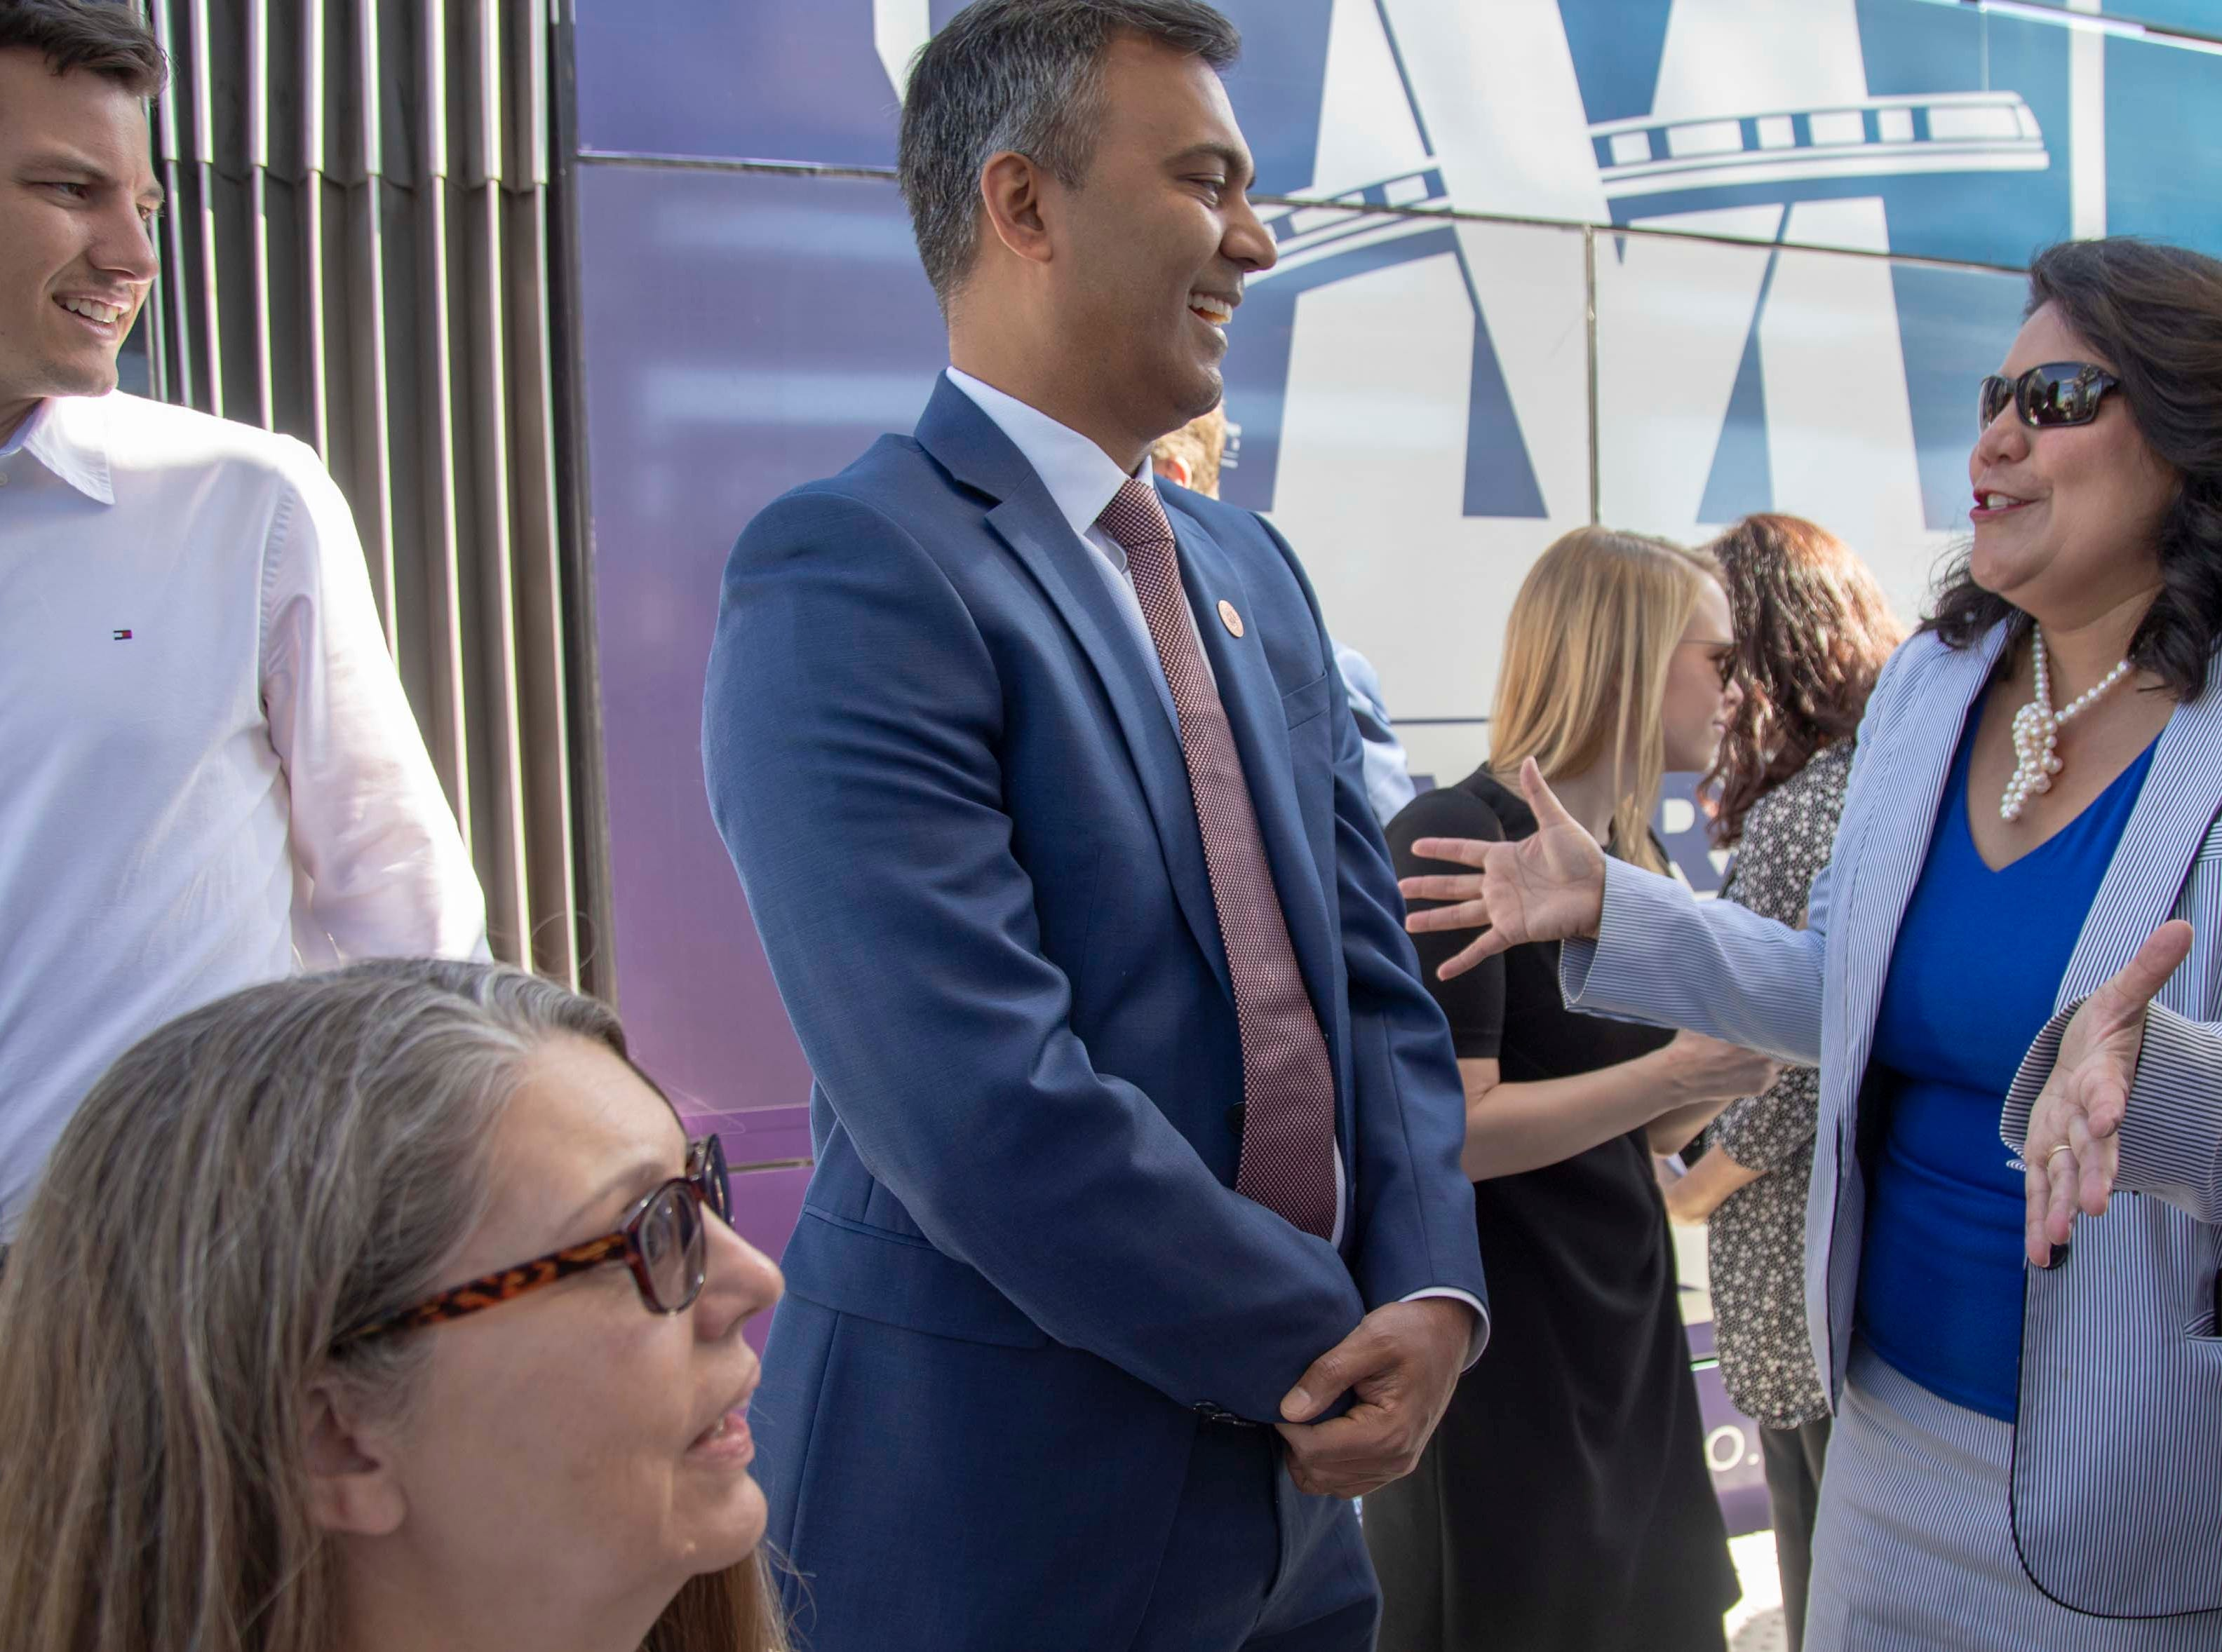 State Rep. Amish Shah, D-Phoenix, talks with Councilwoman Laura Pastor during Phoenix and Valley Metro's unveiling of the new 50th Street and Washington light rail station, which will provide additional access to Ability 360, one of Arizona's largest disability resource centers.